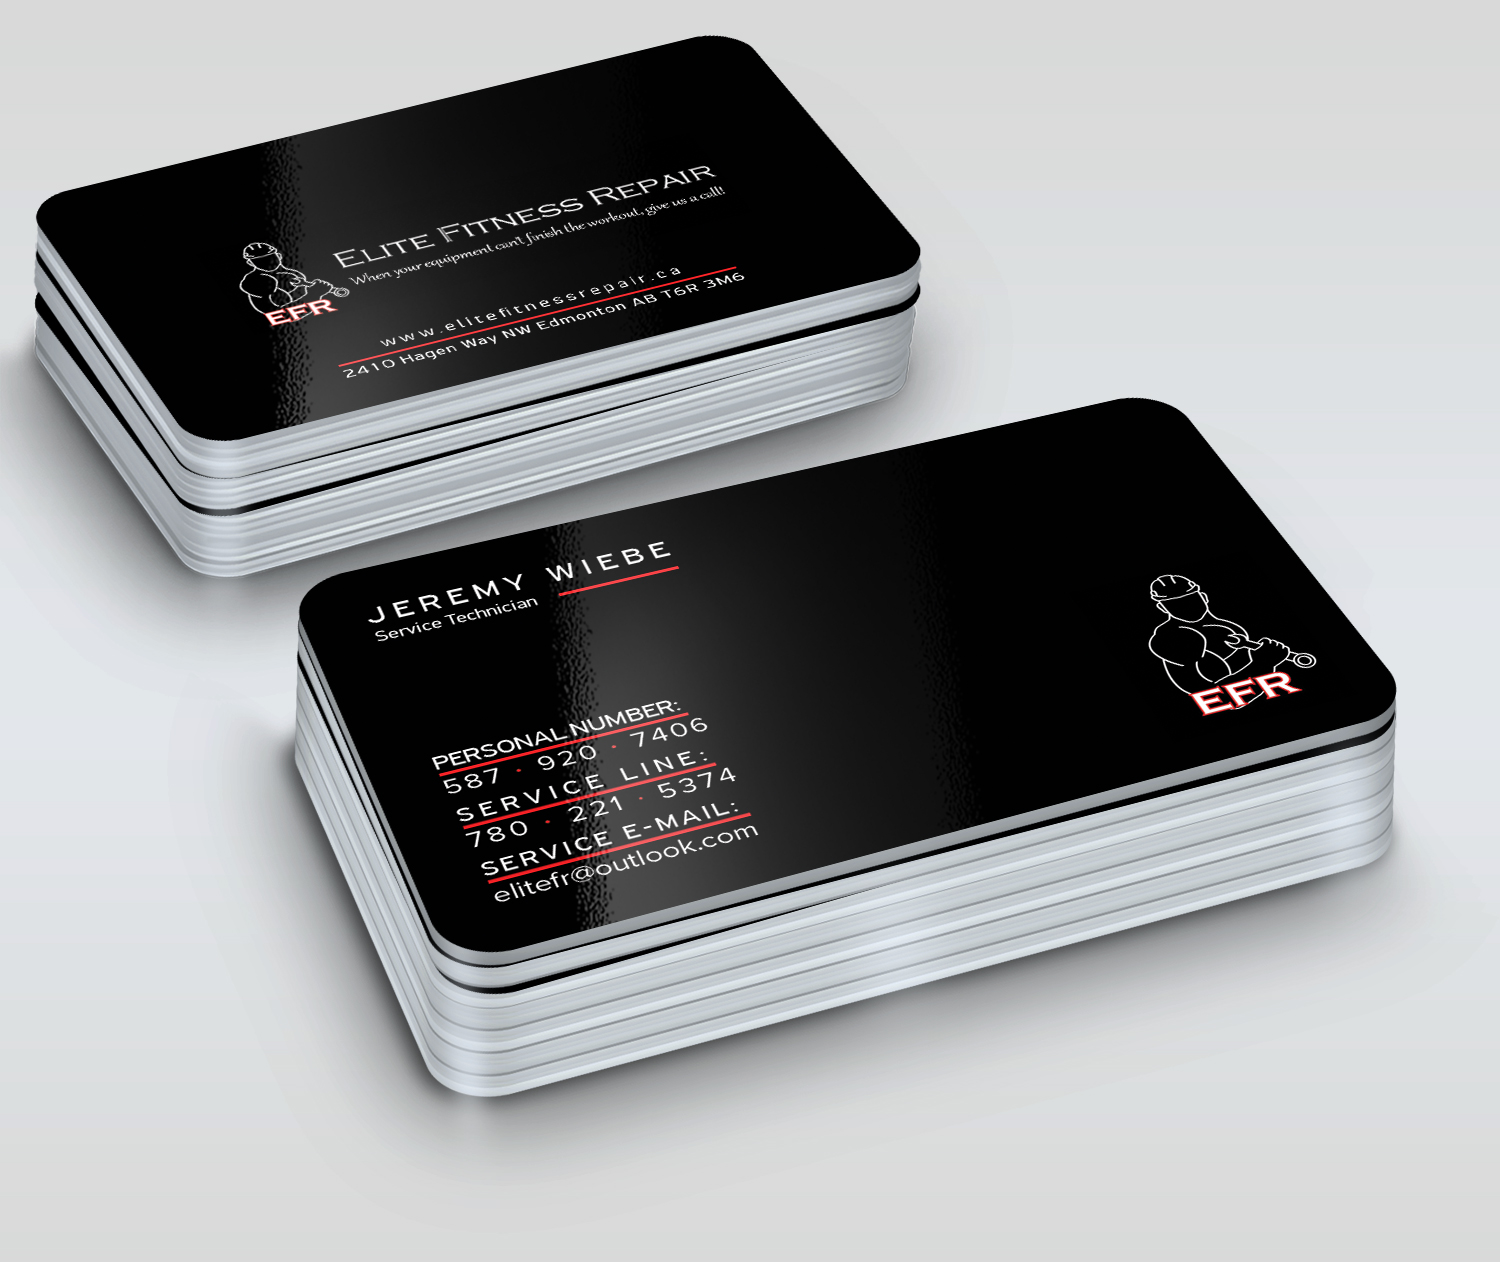 Bold professional appliance repair business card design for elite bold professional appliance repair business card design for elite fitness repair in canada design 13386335 colourmoves